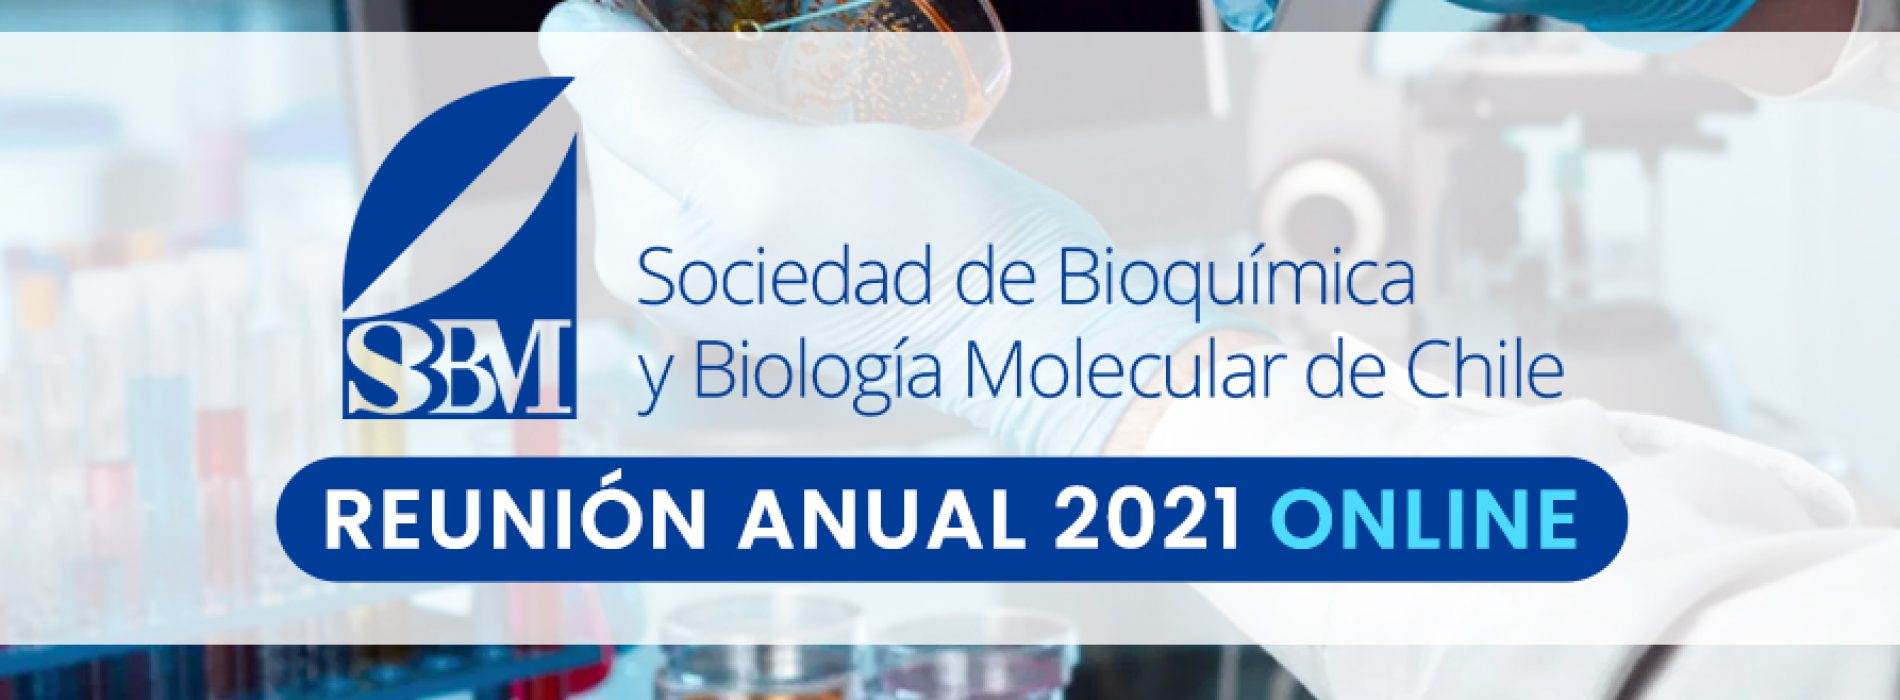 Deadline to receive free communications is extended – SBBMCh Annual Meeting 2021 Online